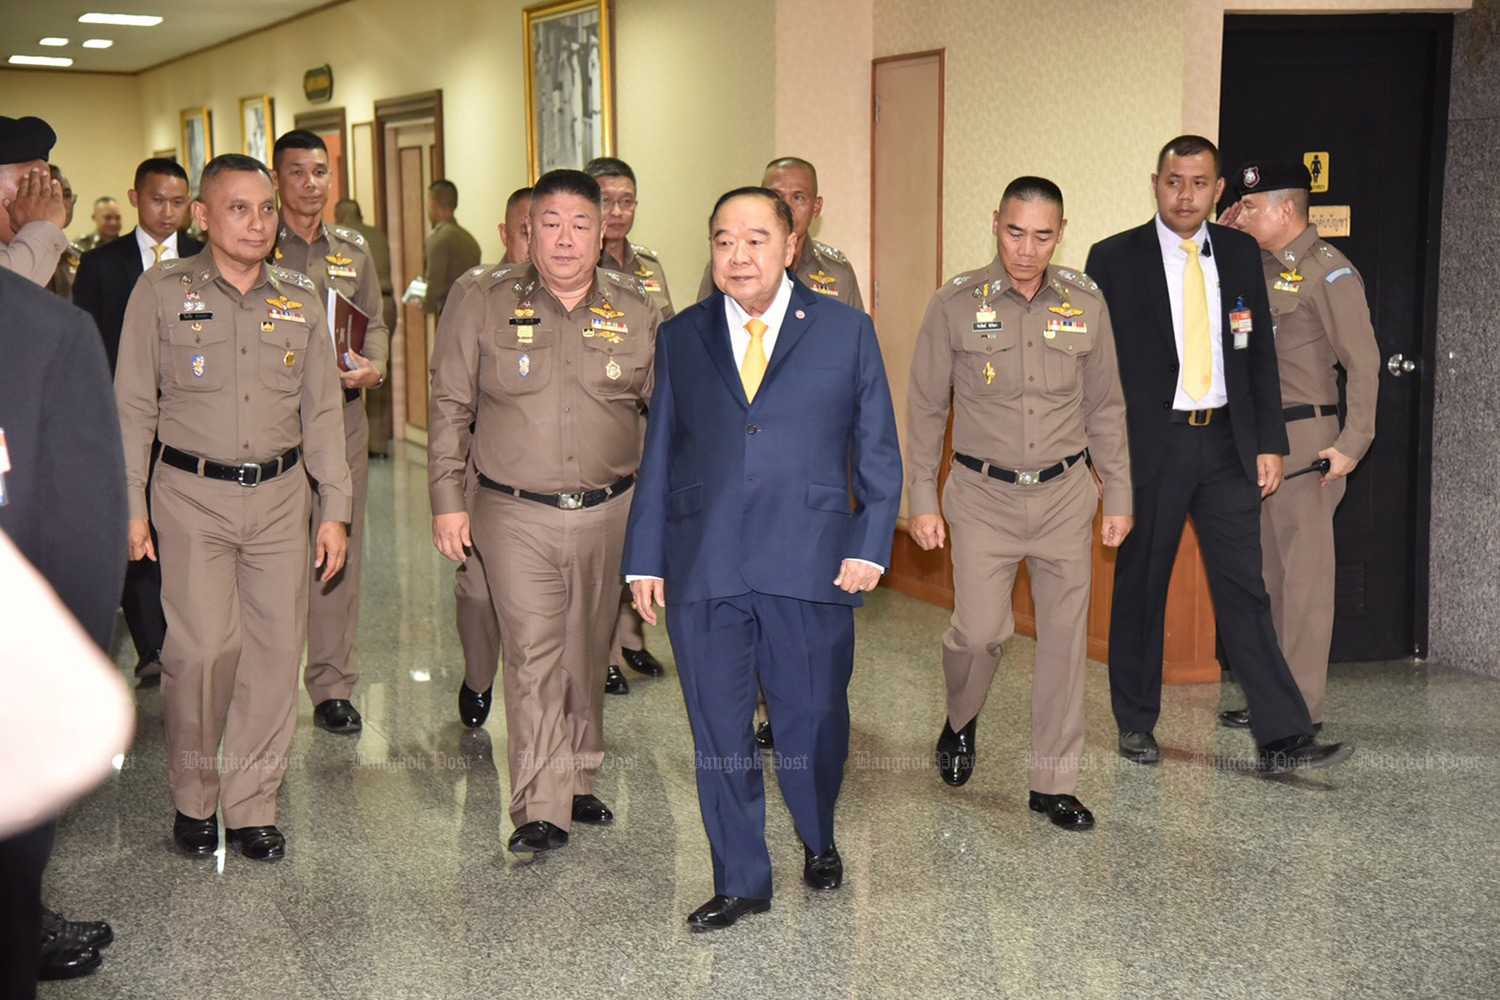 Deputy Prime Minister Gen Prawit Wongsuwon, centre, emerges from a meeting of the Police Commission on Wednesday with national police chief Pol Gen Chakthip Chaijinda, third from right, and Pol Gen Wirachai Songmetta, deputy national police chief, left. (Photo by Wassana Nanuam)